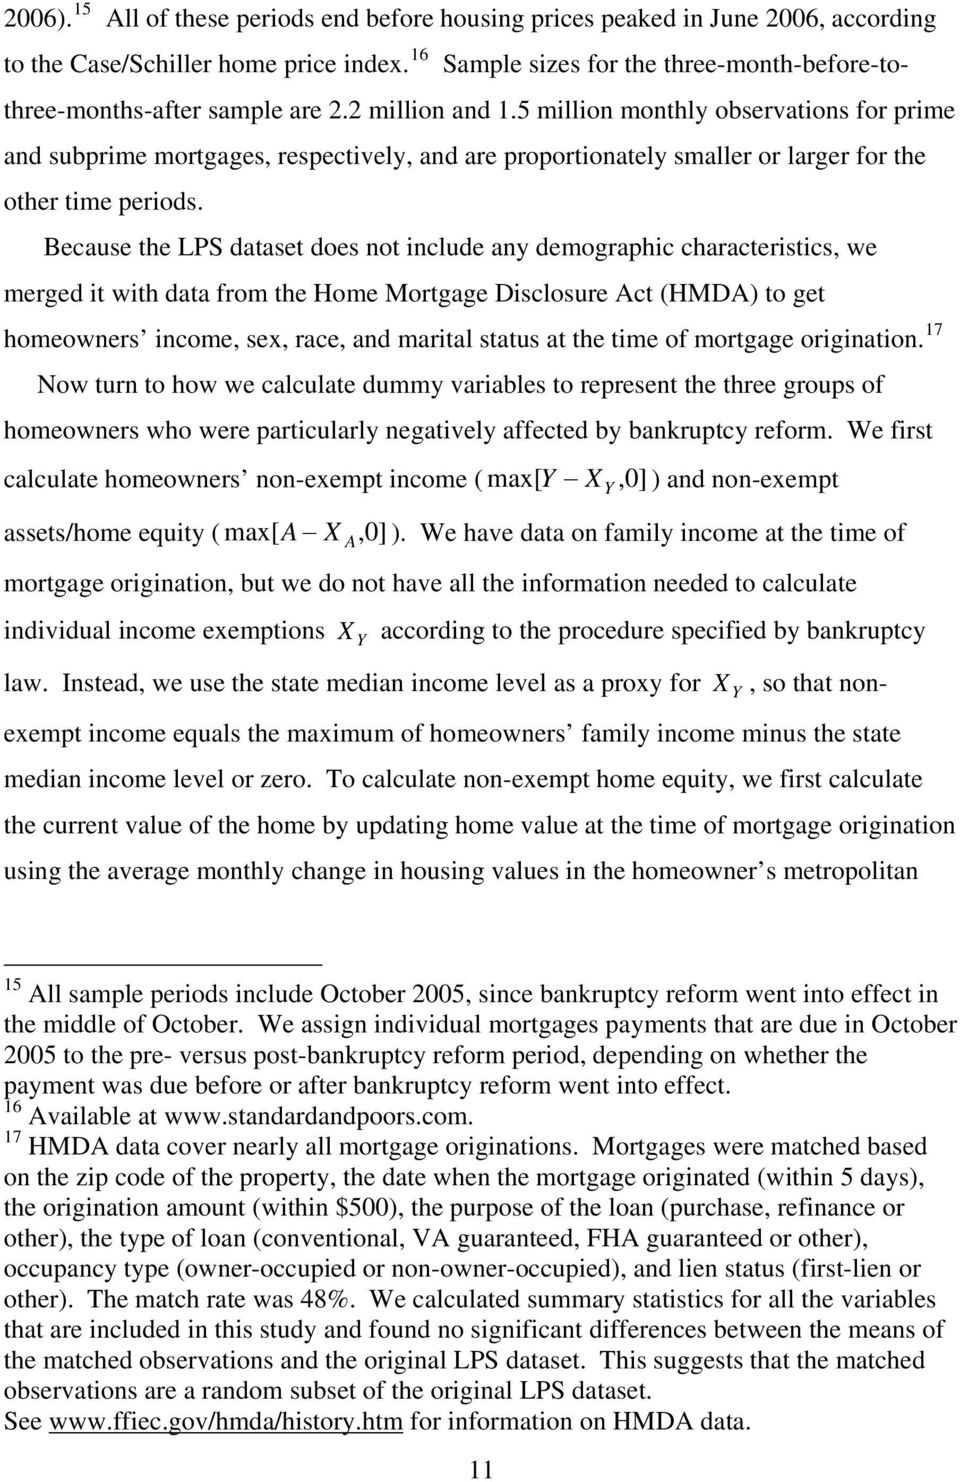 5 million monthly observations for prime and subprime mortgages, respectively, and are proportionately smaller or larger for the other time periods.